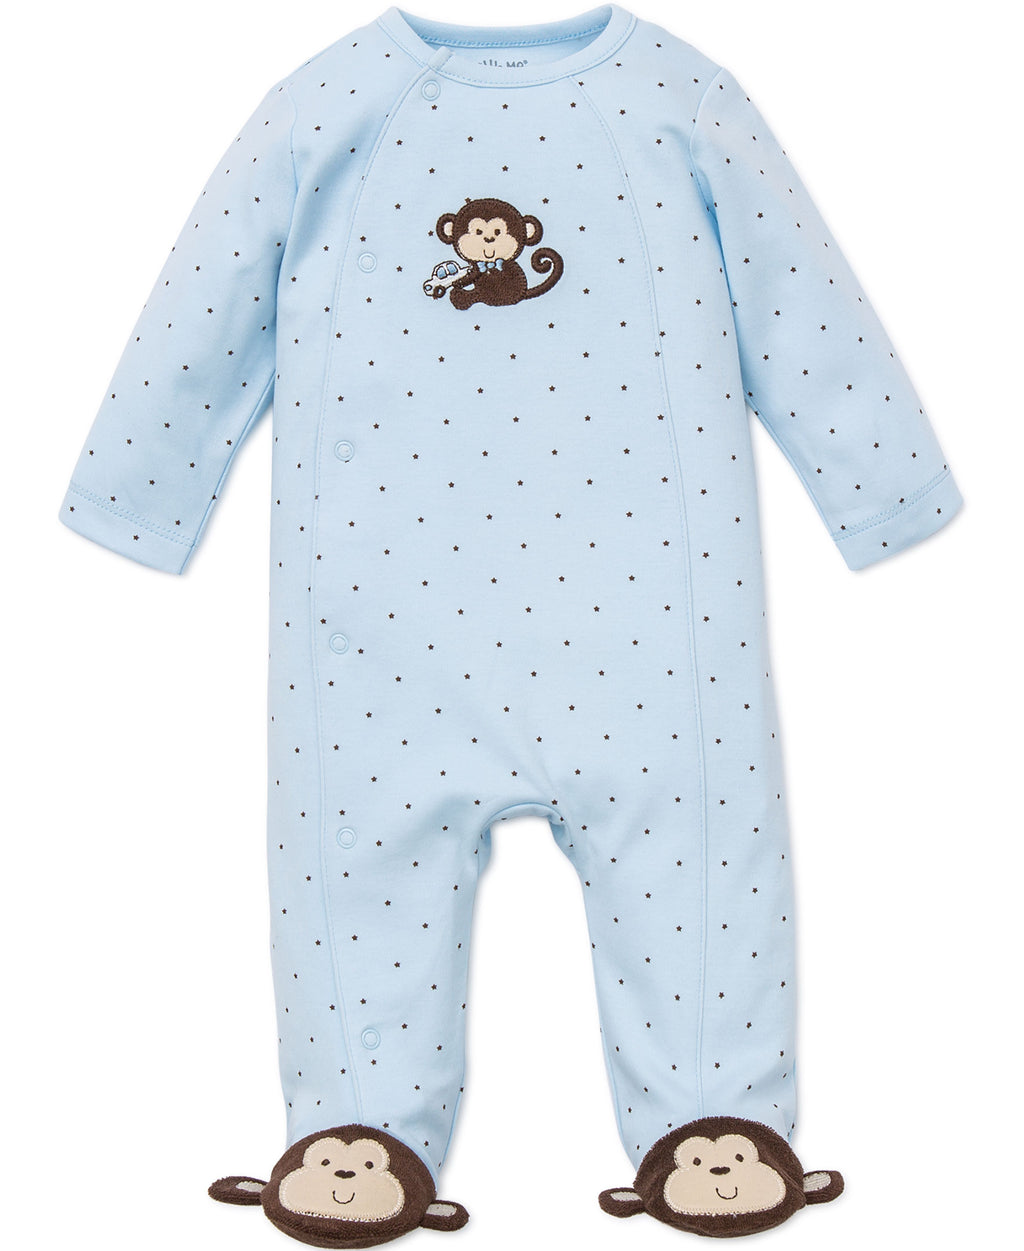 Little Monkey Footed One-Piece